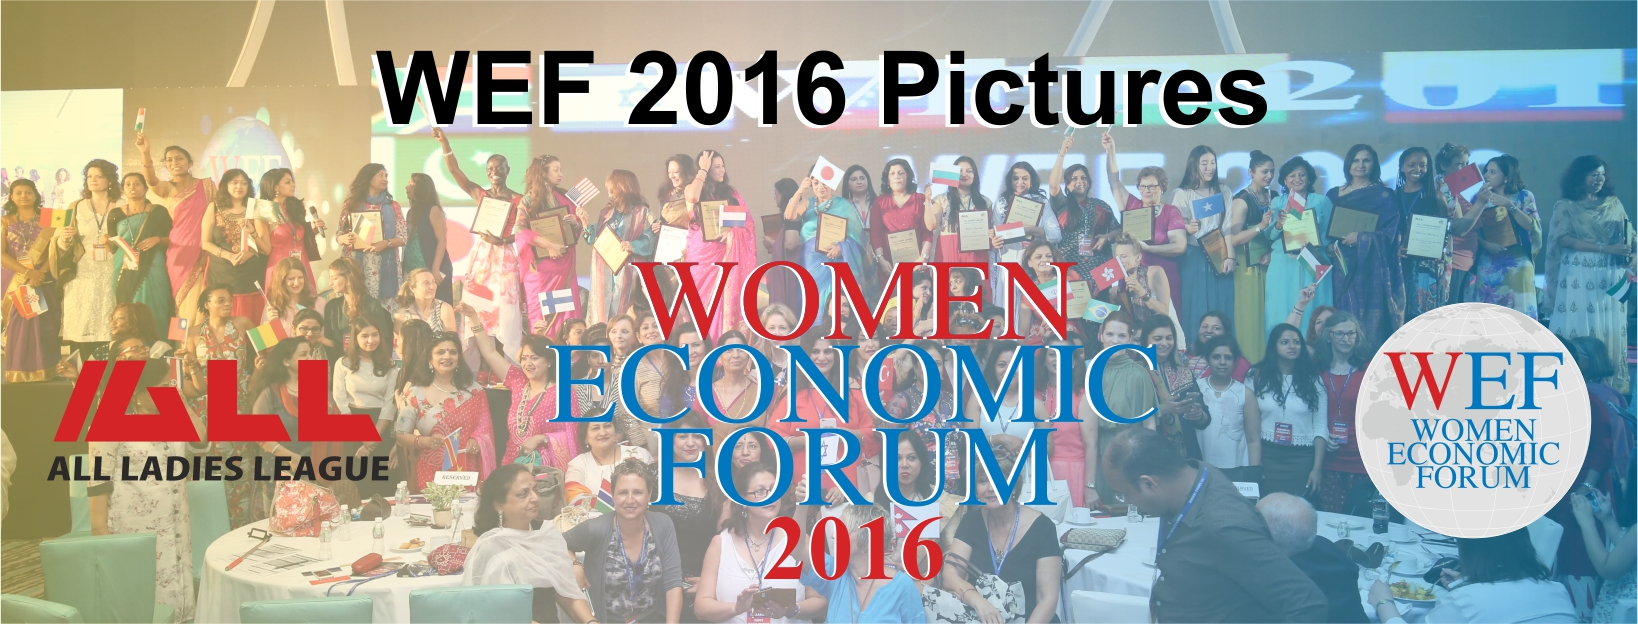 WEF 2016 Pictures